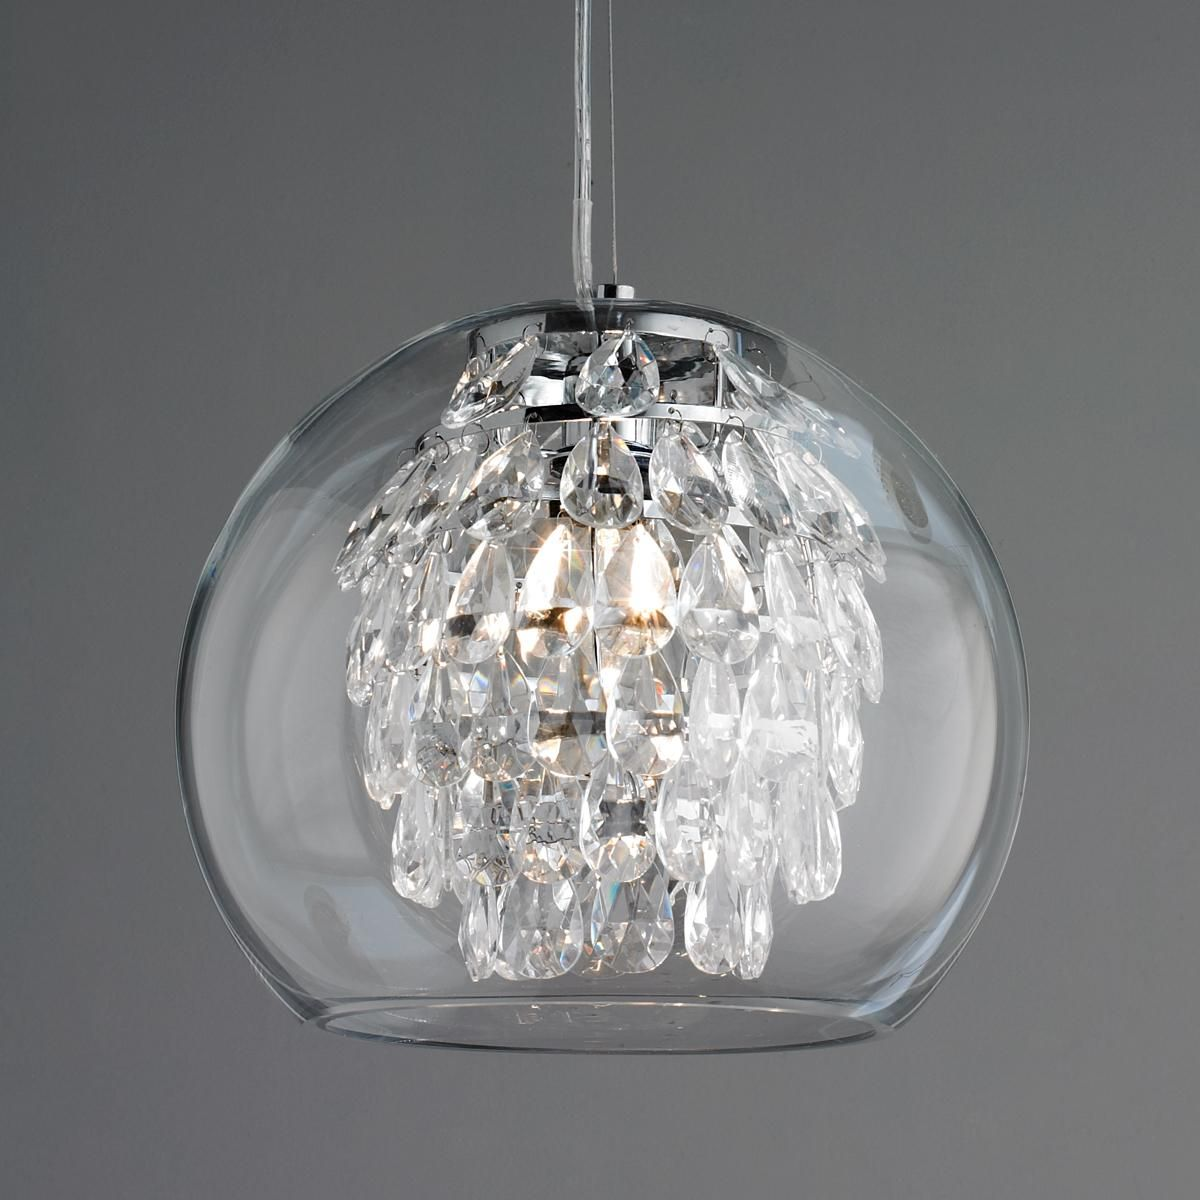 Clear Glass Pendant Light Glass Globe And Crystal Pendant Light Crystal Pendant